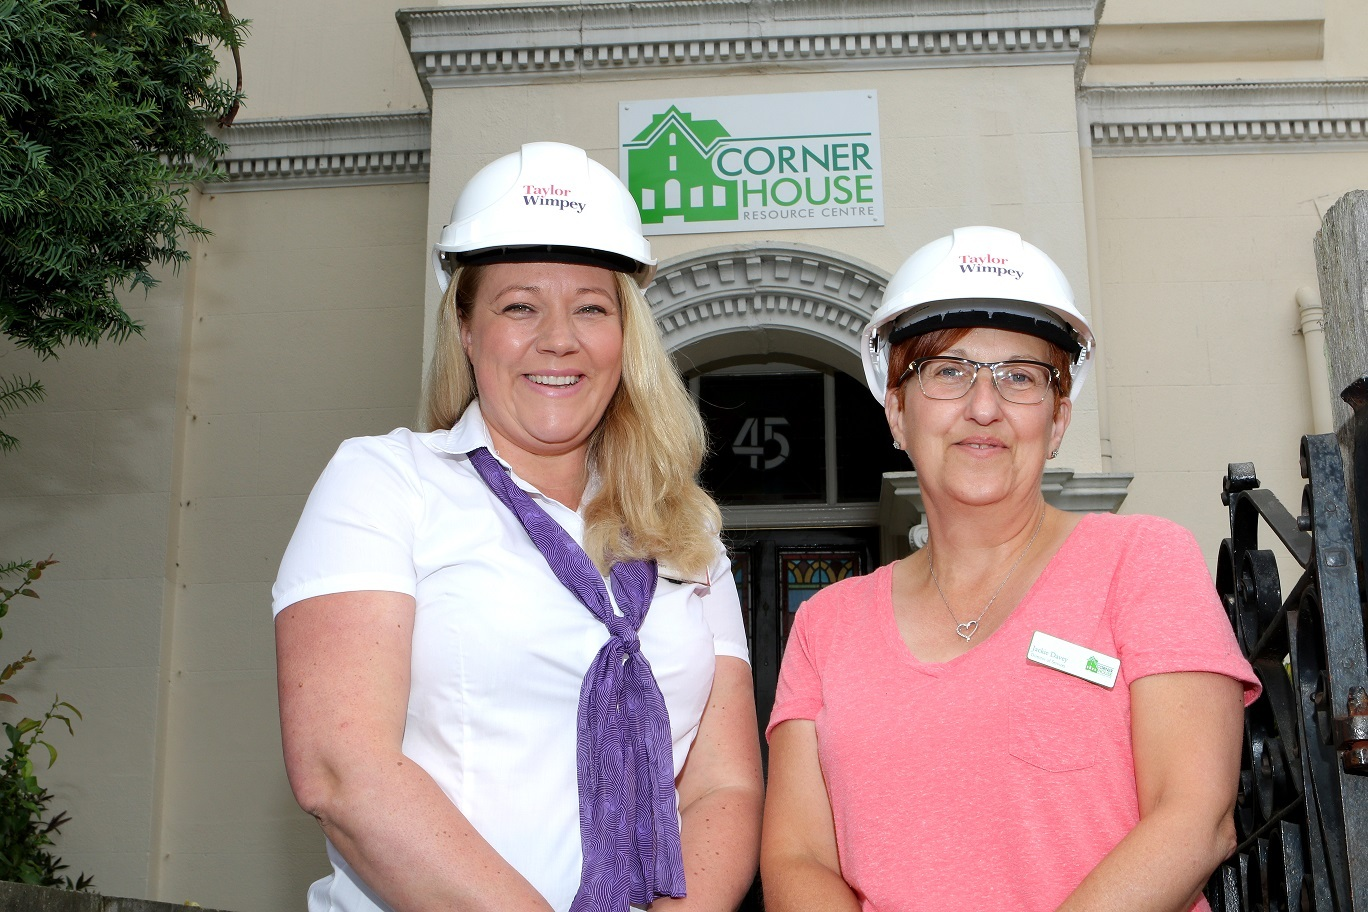 Taylor Wimpey gives donation to Corner House